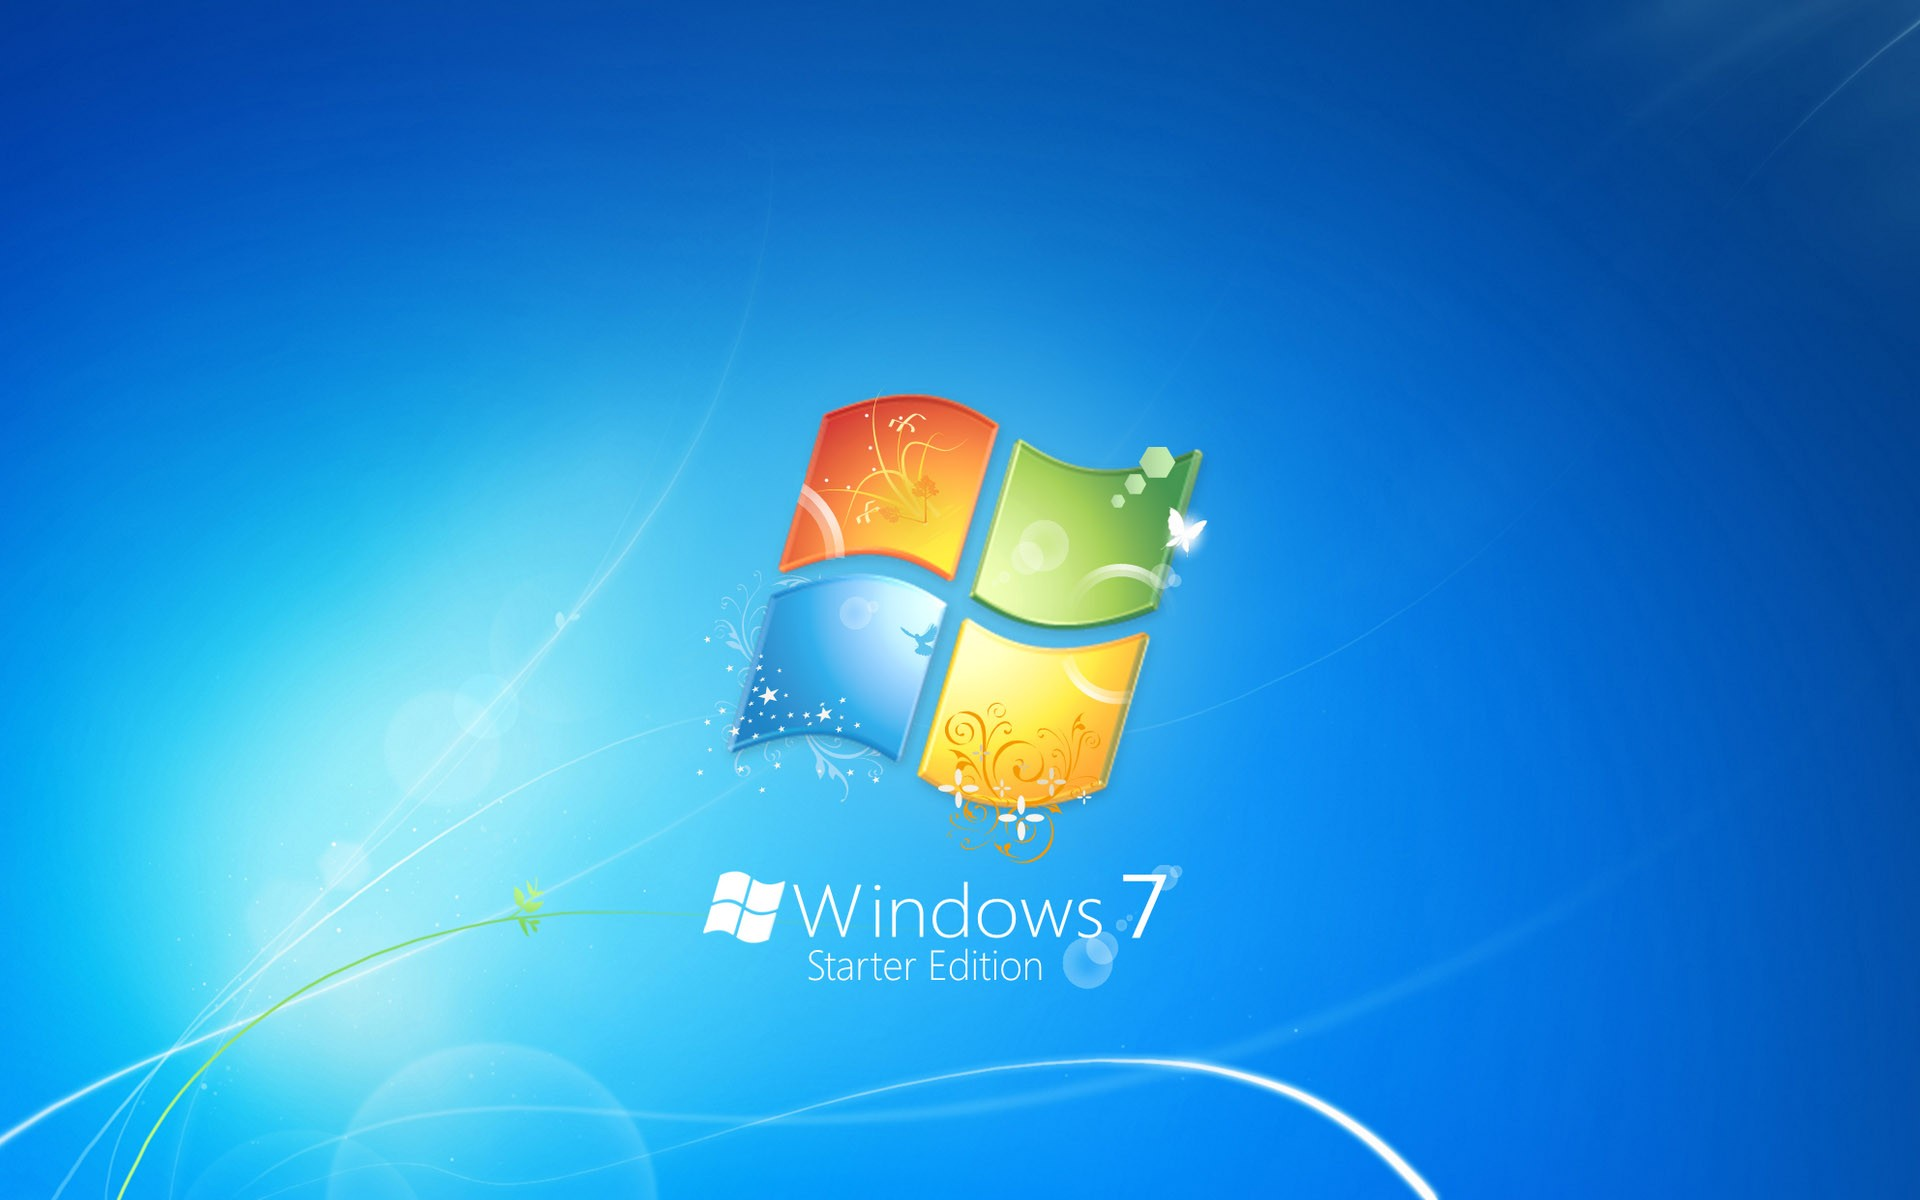 56+ windows 7 wallpapers ·① download free awesome full hd